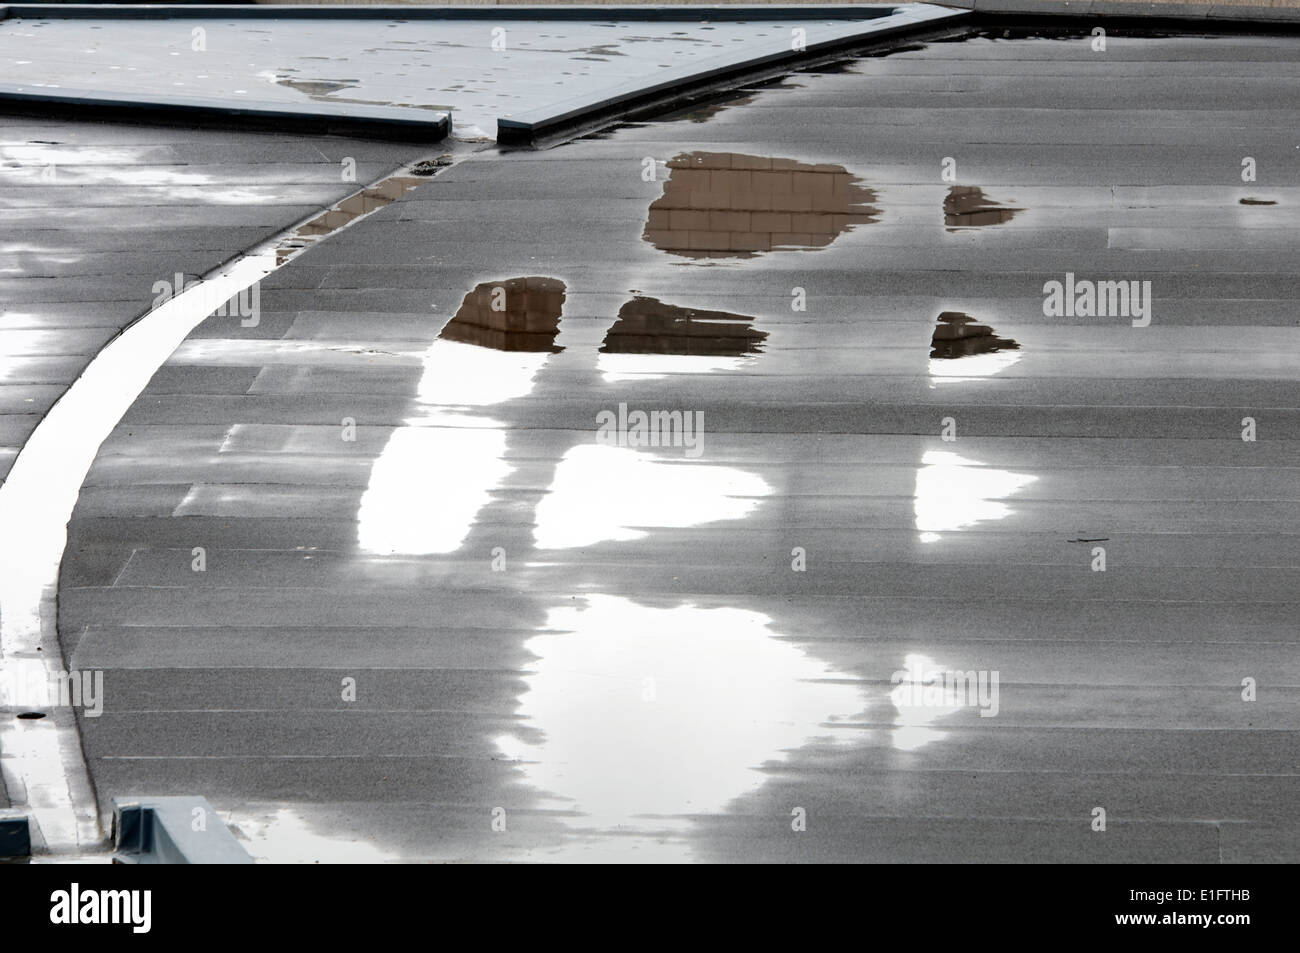 Flat roof of the REP theatre with puddles, Birmingham, UK - Stock Image